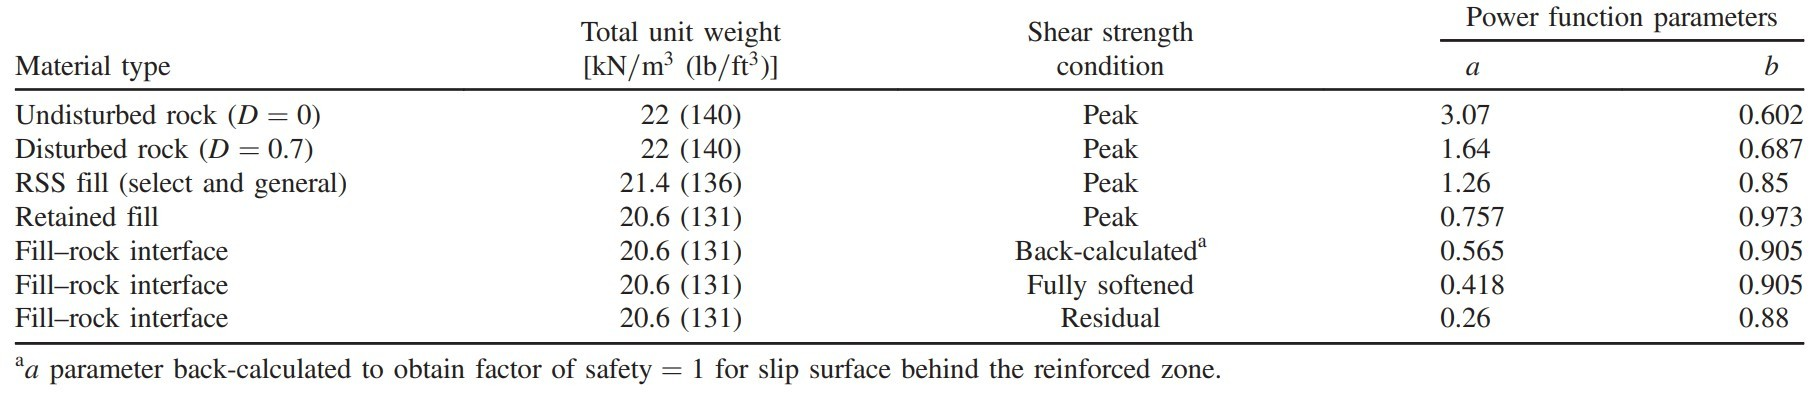 Table 1: Shear strength parameters used for analyses of Yeager RSS.